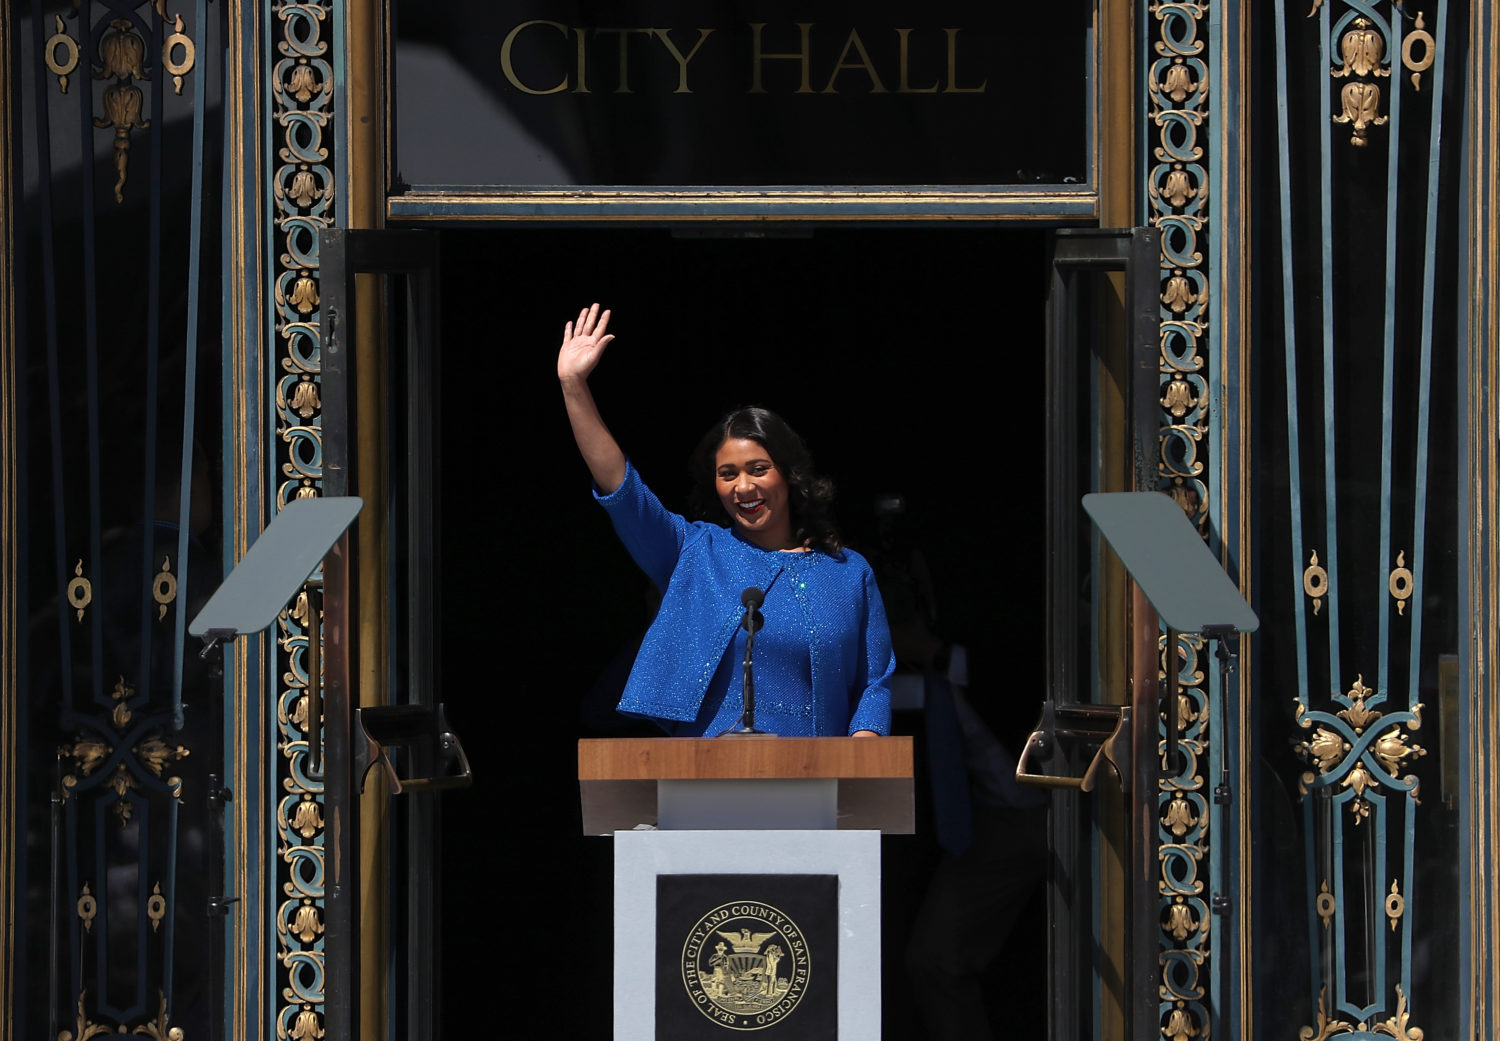 SAN FRANCISCO, CA - JULY 11: San Francisco mayor London Breed waves during her inauguration at San Francisco City Hall on July 11, 2018 in San Francisco, California. London Breed made history after being sworn in as the first black woman to be elected as mayor of San Francisco. Breed will finish out the term of former San Francisco mayor Ed Lee who died unexpectedly last year. (Photo by Justin Sullivan/Getty Images)